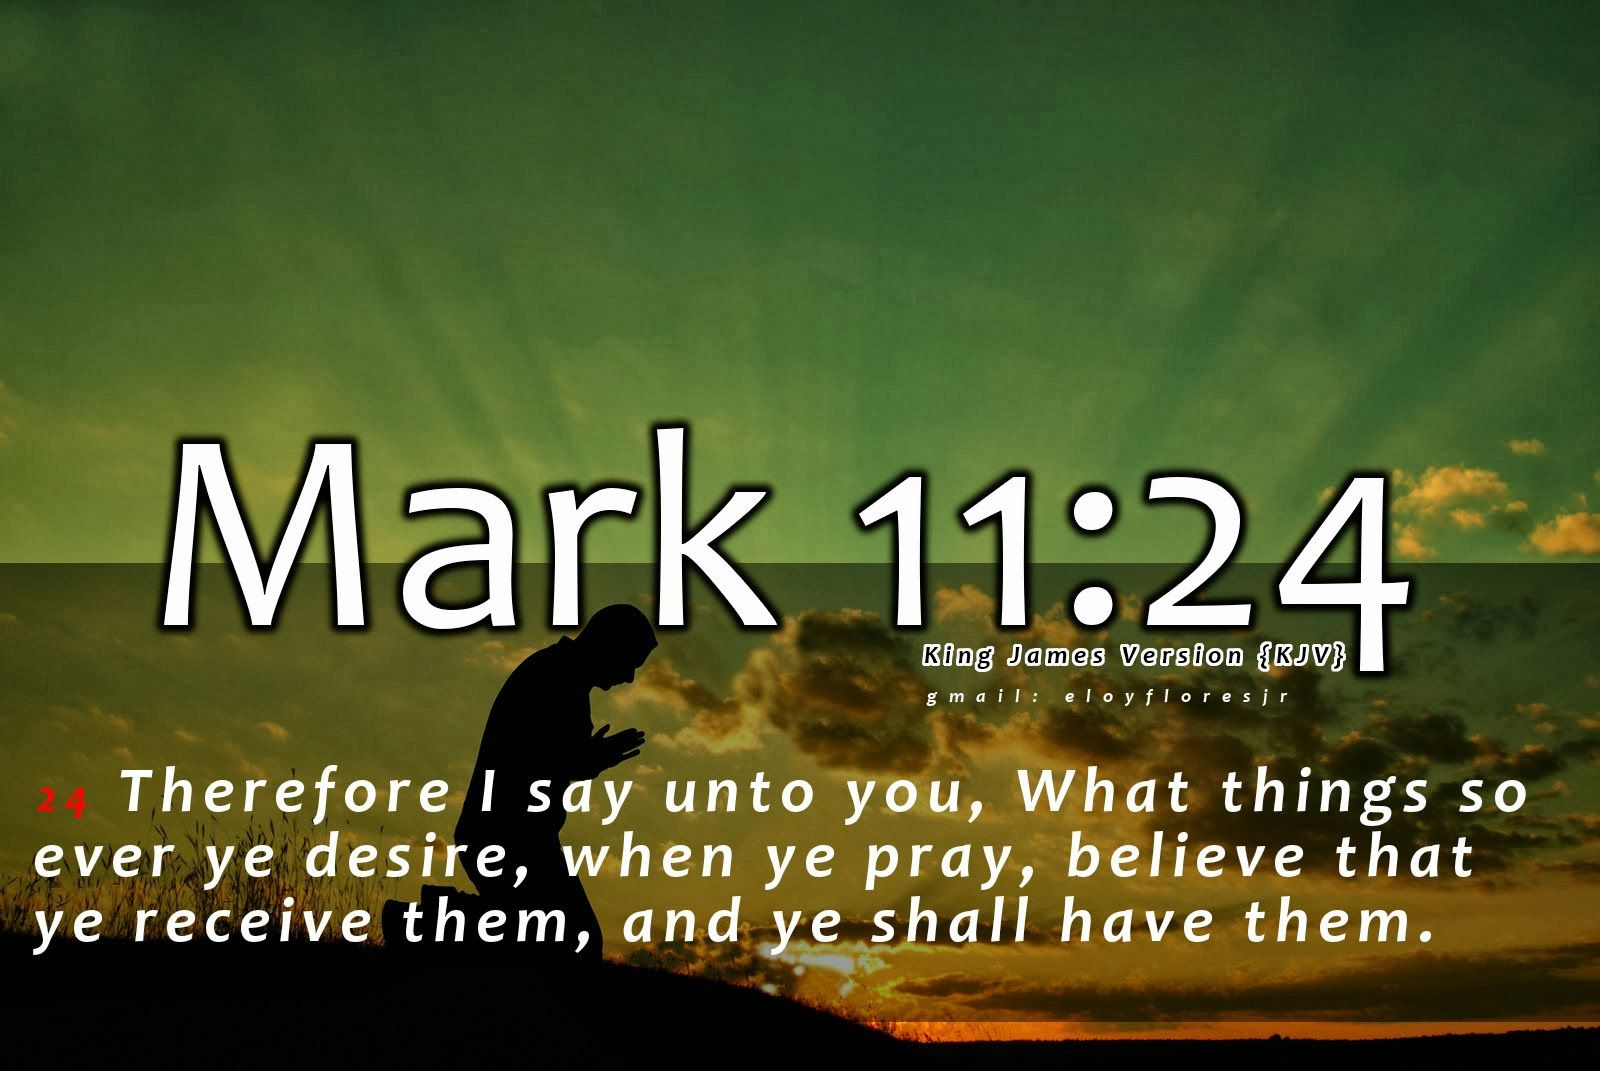 Bible Verse Mark 11:24 | Bible Verses | Bible verse pictures, Bible